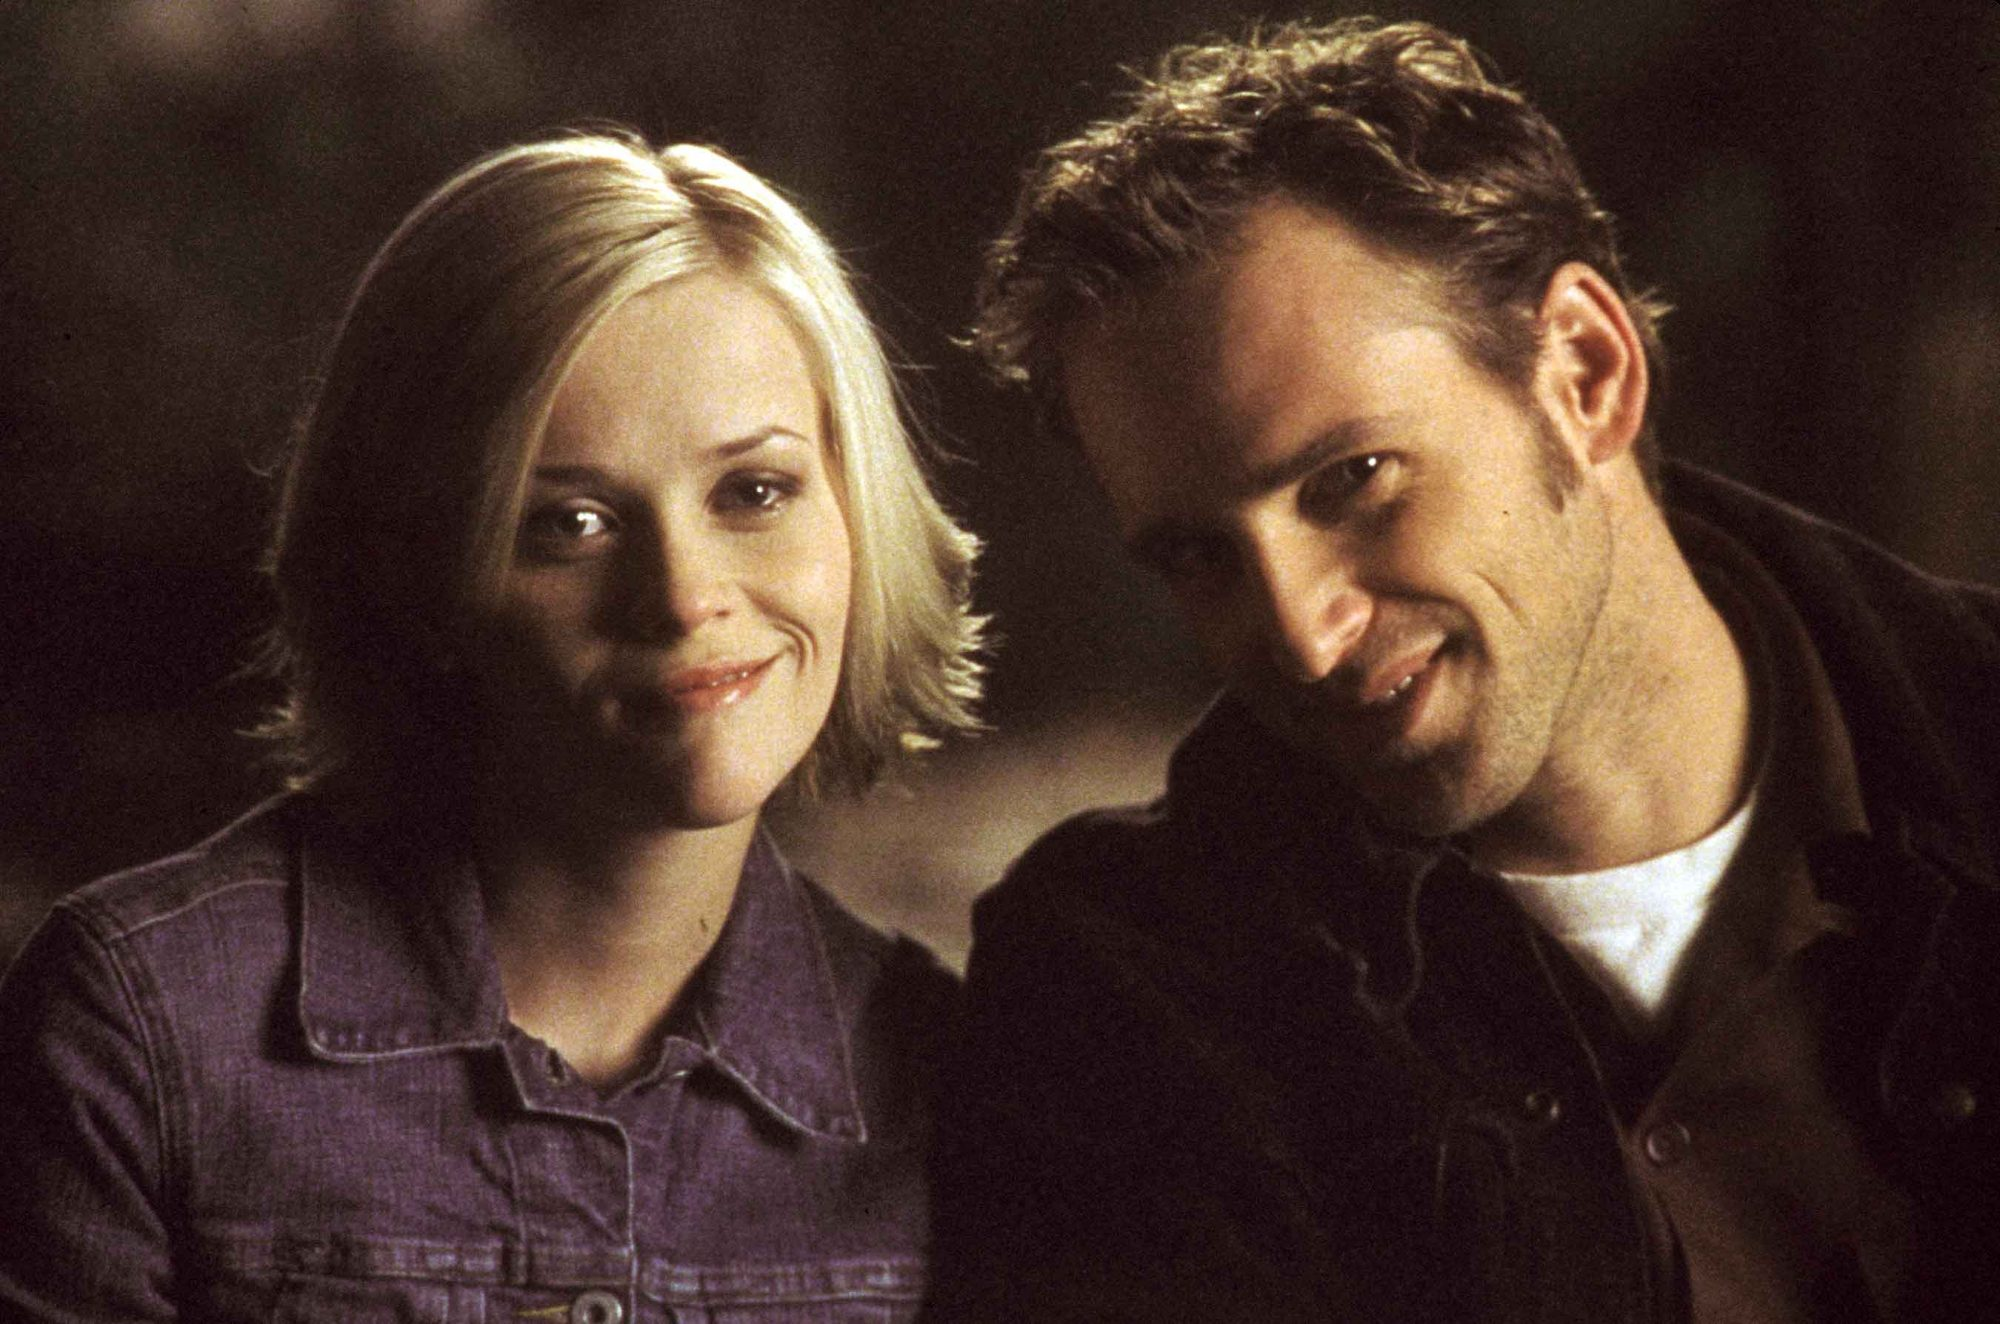 <em>Sweet Home Alabama</em> Sequel with Reese Witherspoon? Josh Lucas Says He'd 'Do It in a Second' josh-lucas-reese-witherspoon-sweet-home-alabama